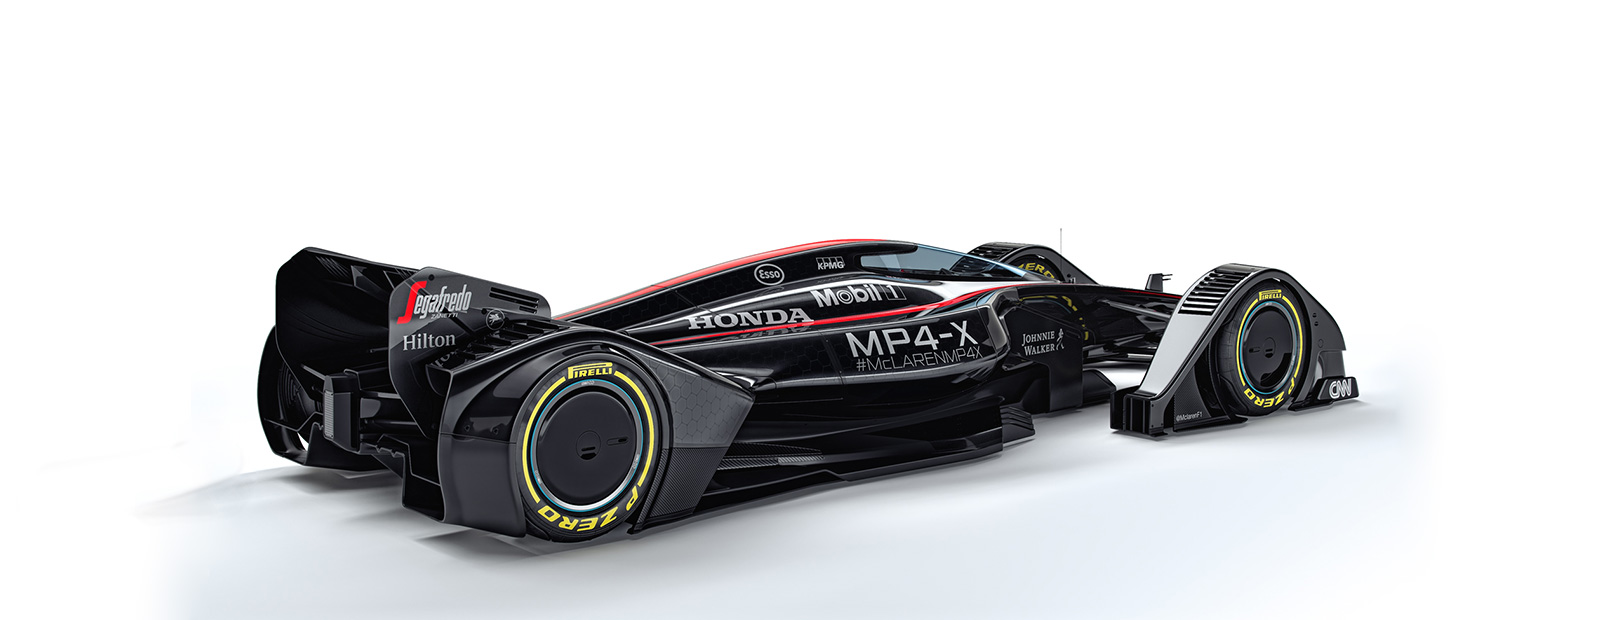 mclaren formula 1 � official website